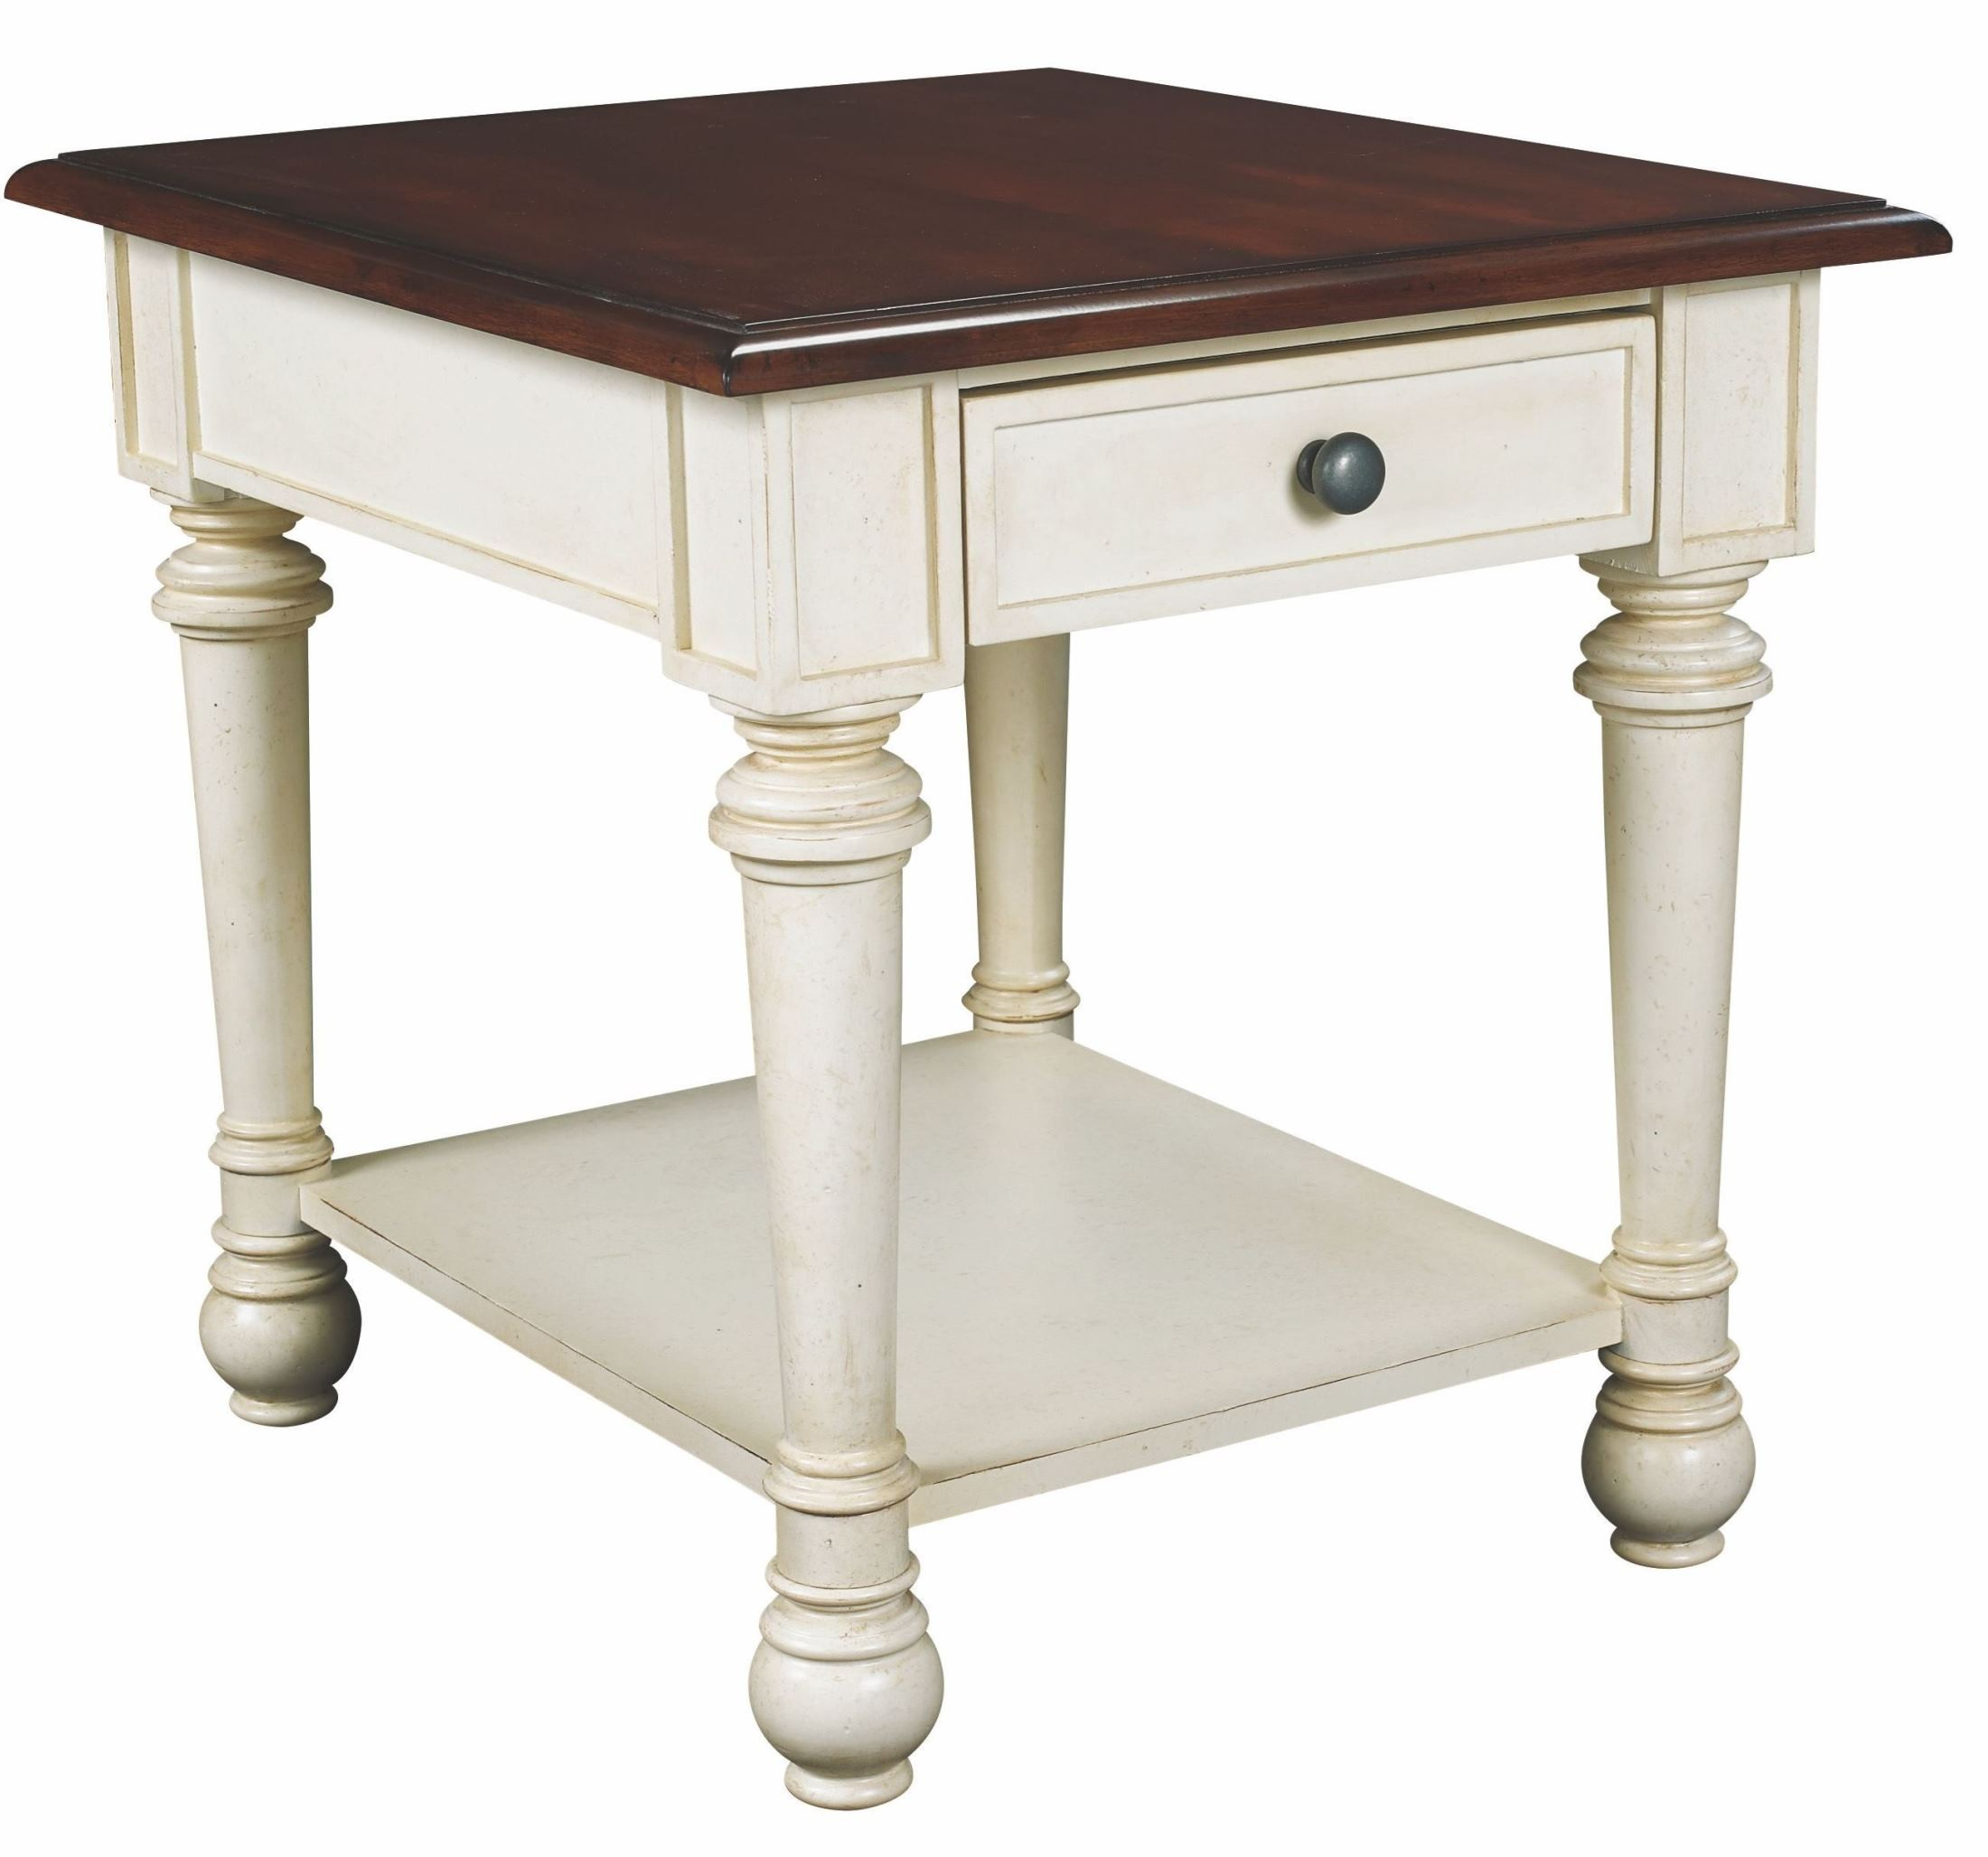 Promenade Antique Linen Rectangular Drawer End Table From